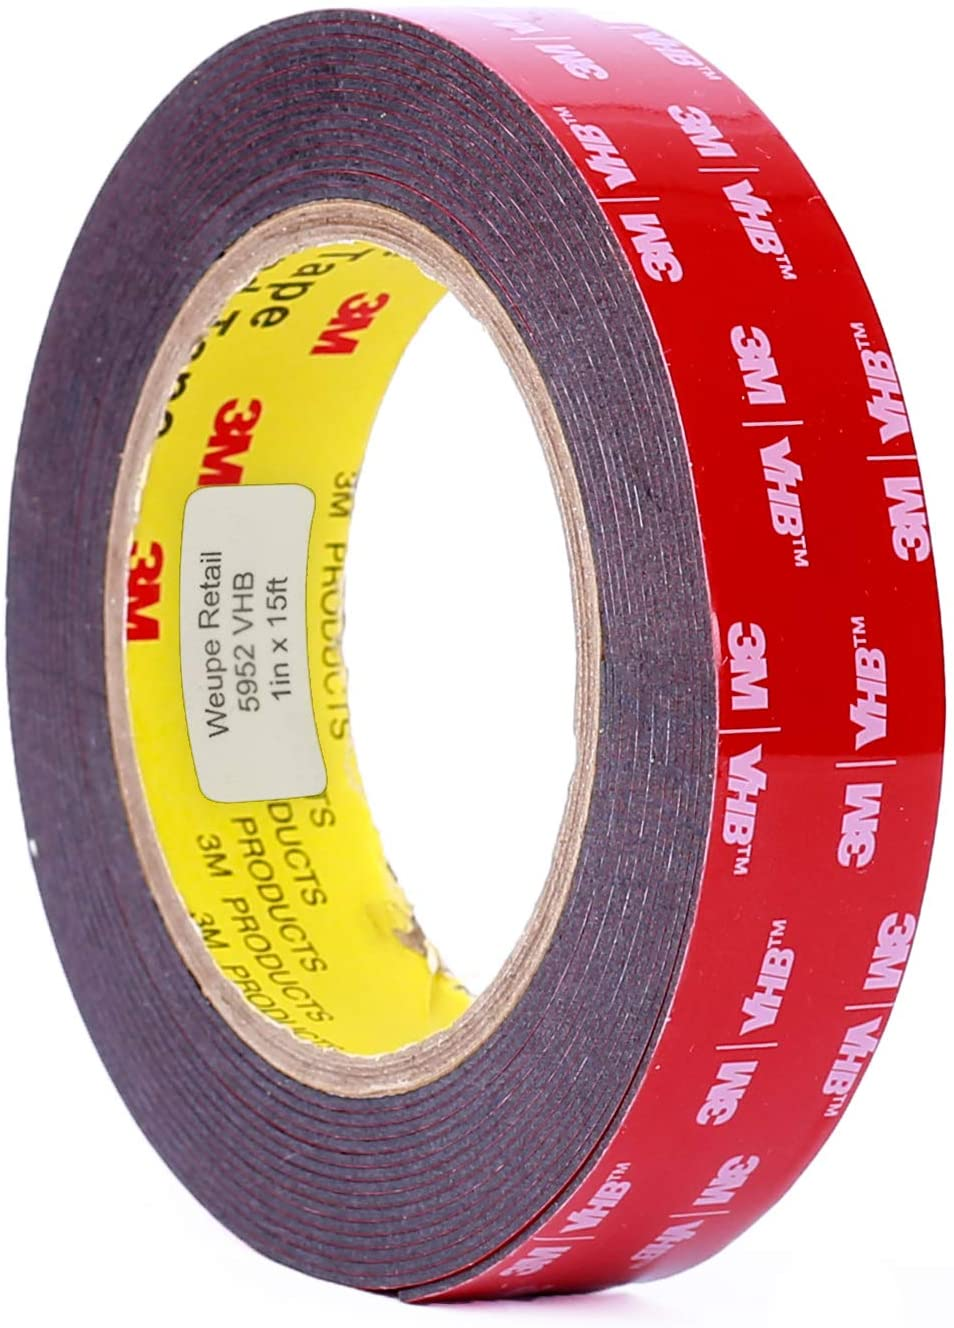 Image of 3M VHB 2-Sided Tape